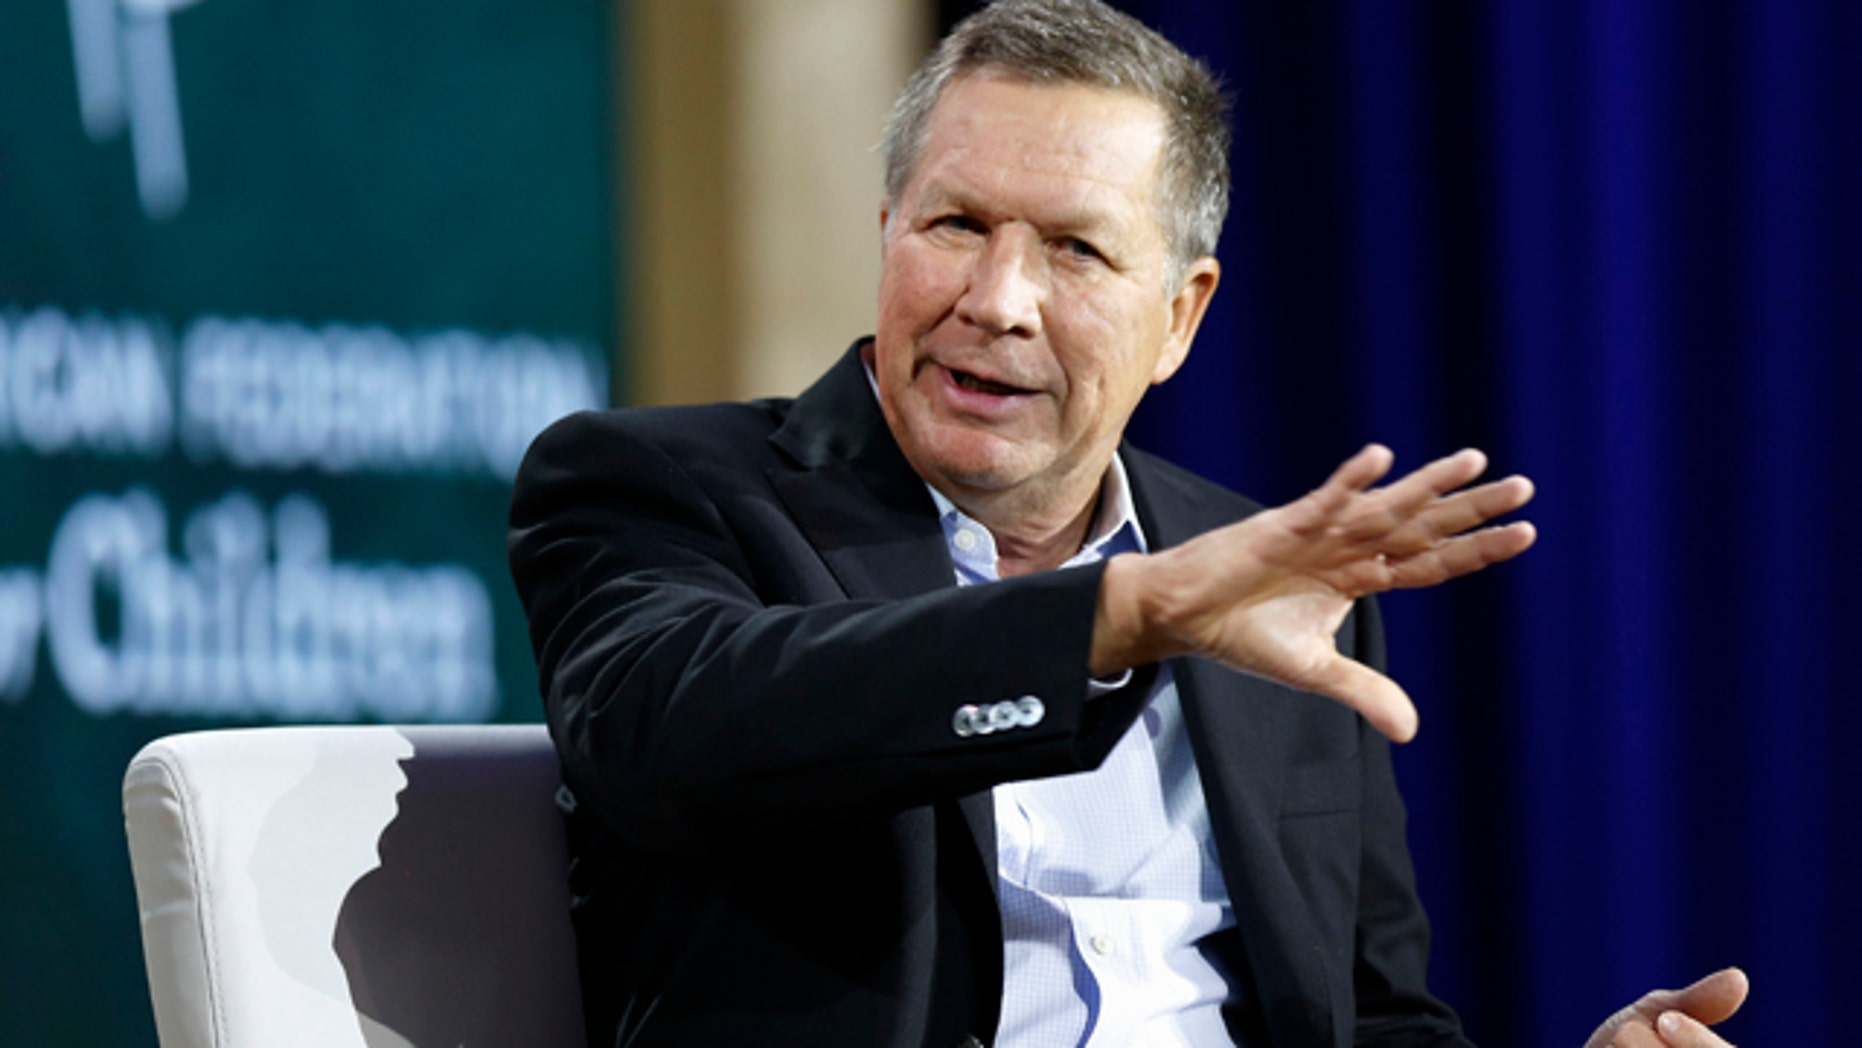 Aug. 19, 2015: Republican presidential candidate and Ohio Gov. John Kasich speaks during an education summit in Londonderry, N.H. (AP Photo/Jim Cole)